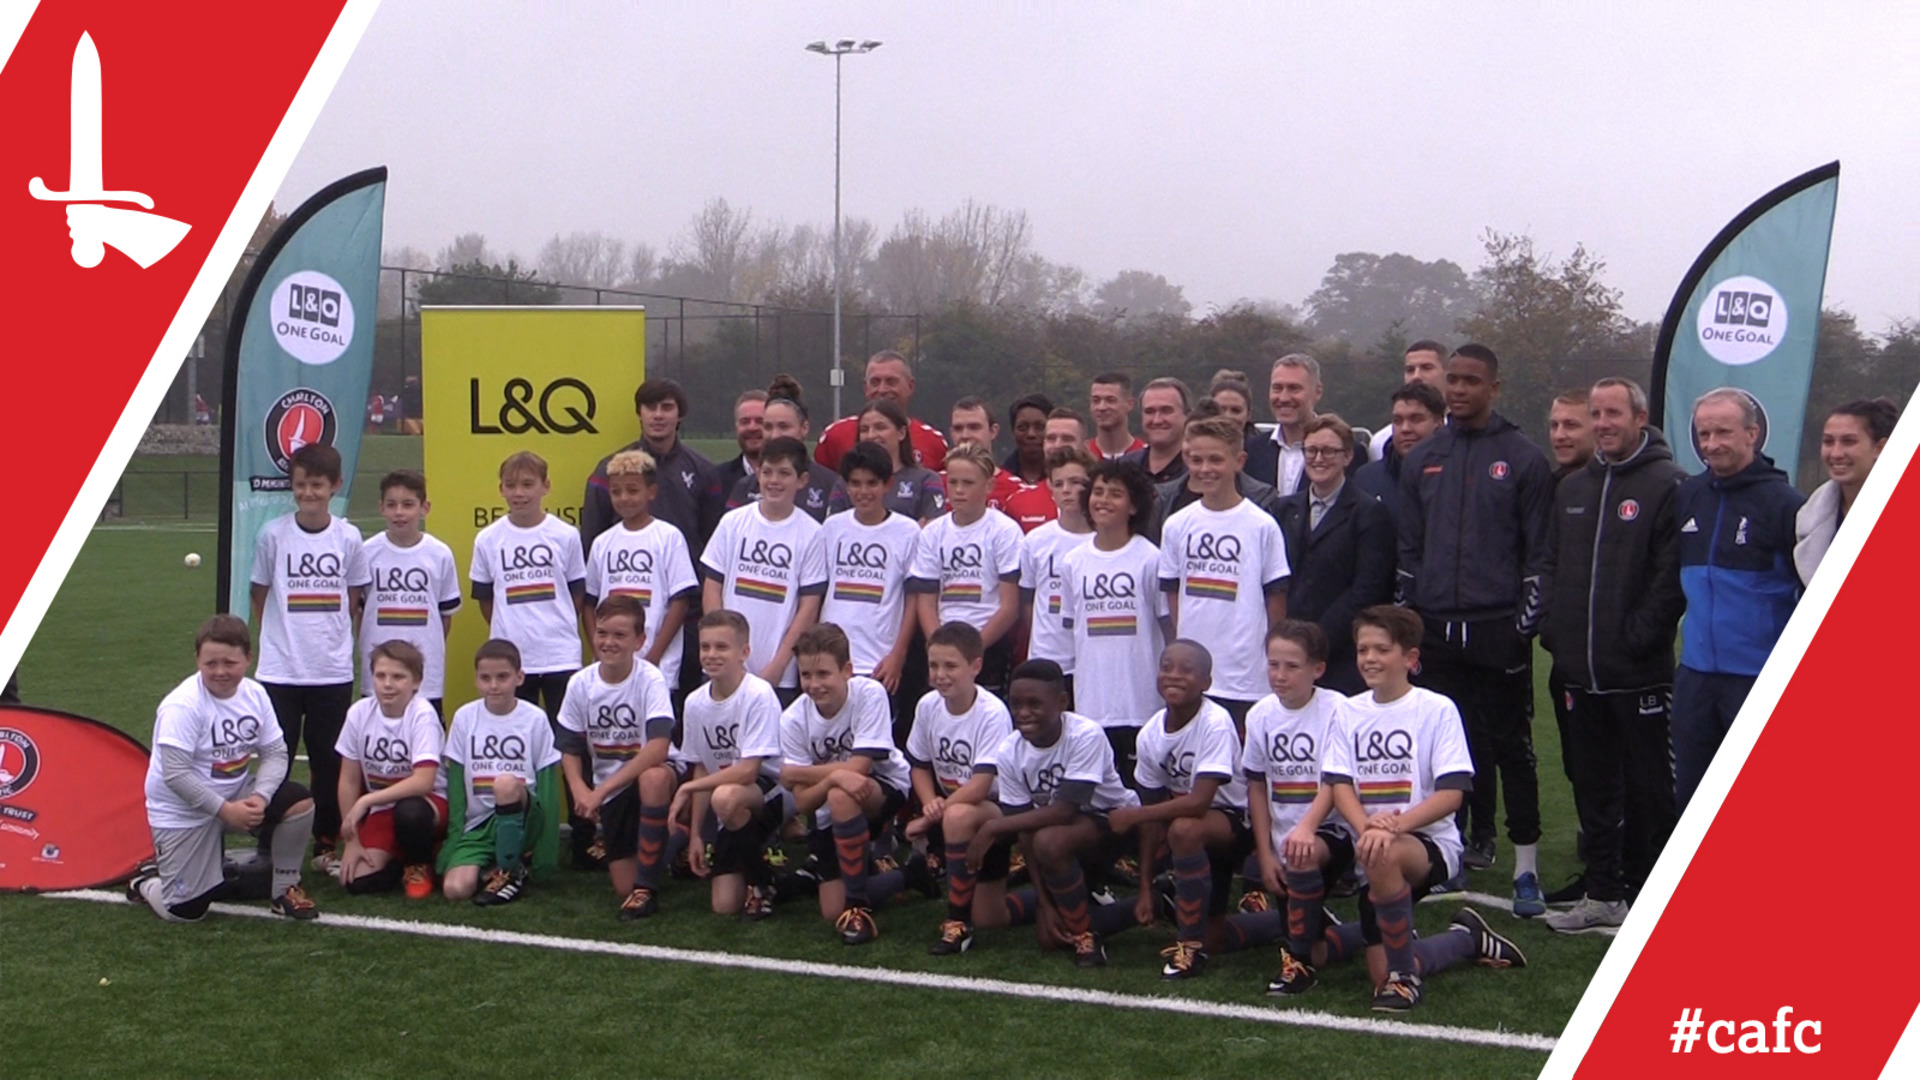 CACT | L&Q One Goal and Stonewall team up to support Rainbow Laces campaign